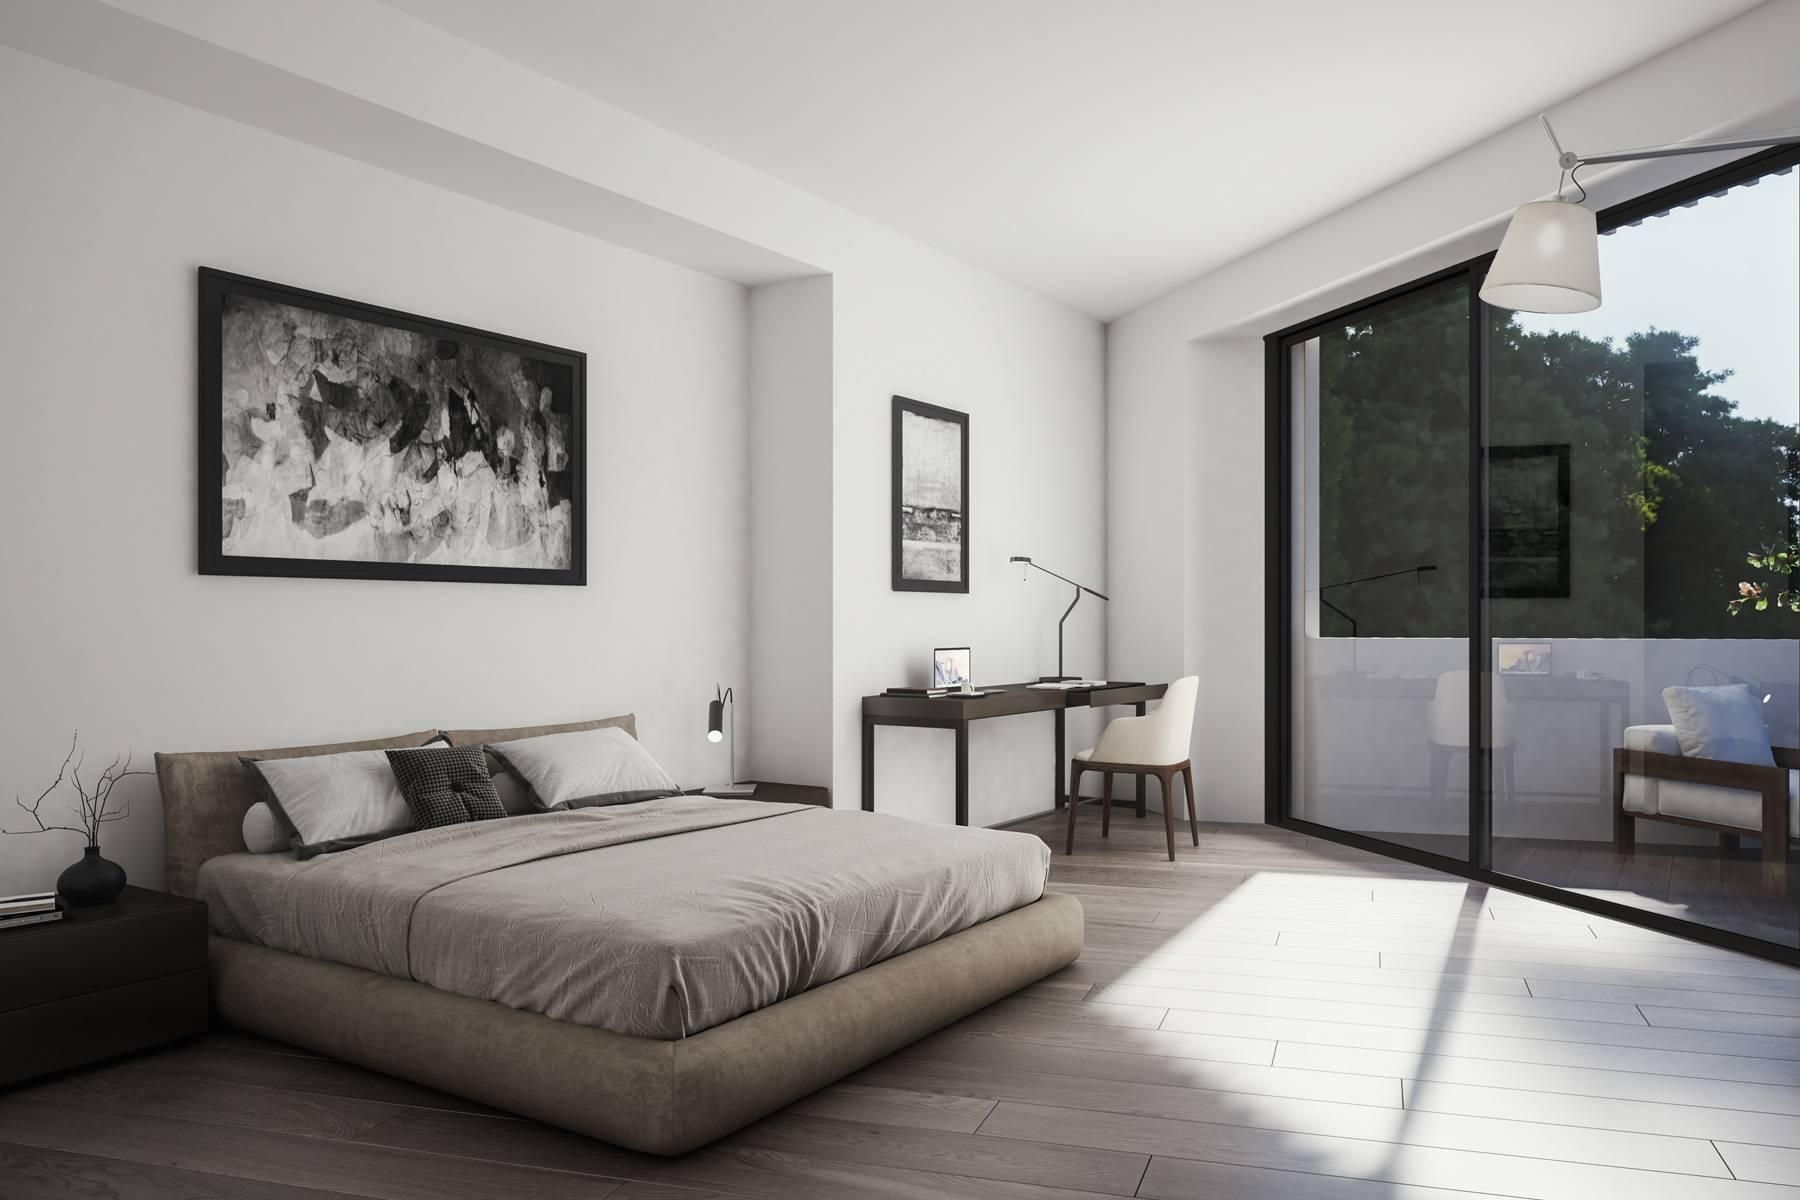 Camilluccia 535: the quiet of the countryside in the heart of Rome - First floor - 7